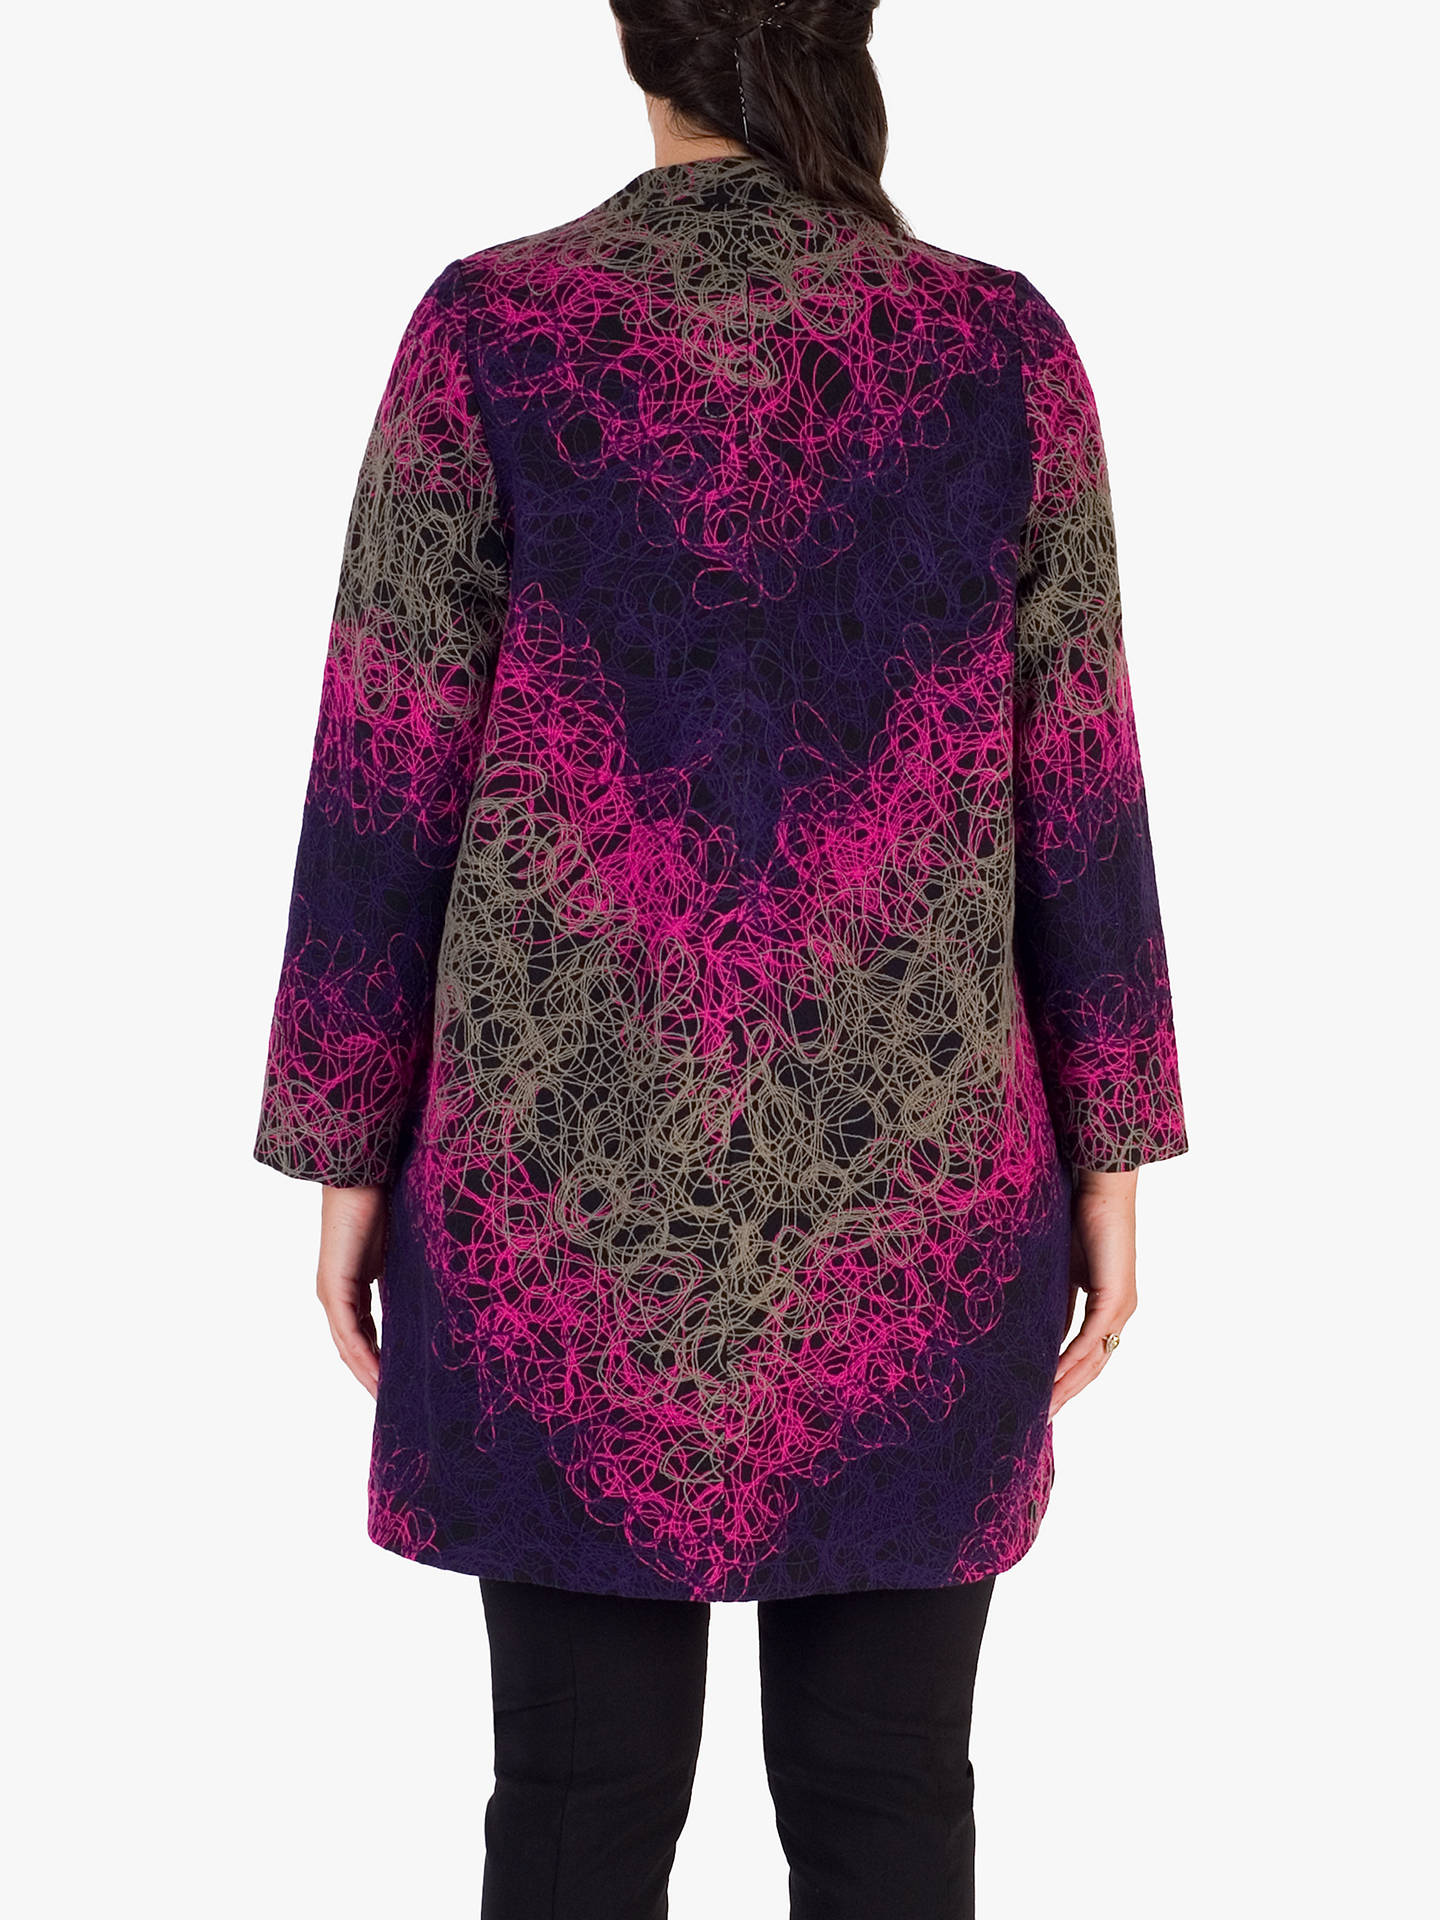 BuyChesca Asymmetric Embroidered Coat, Grape/Pink, 12-14 Online at johnlewis.com